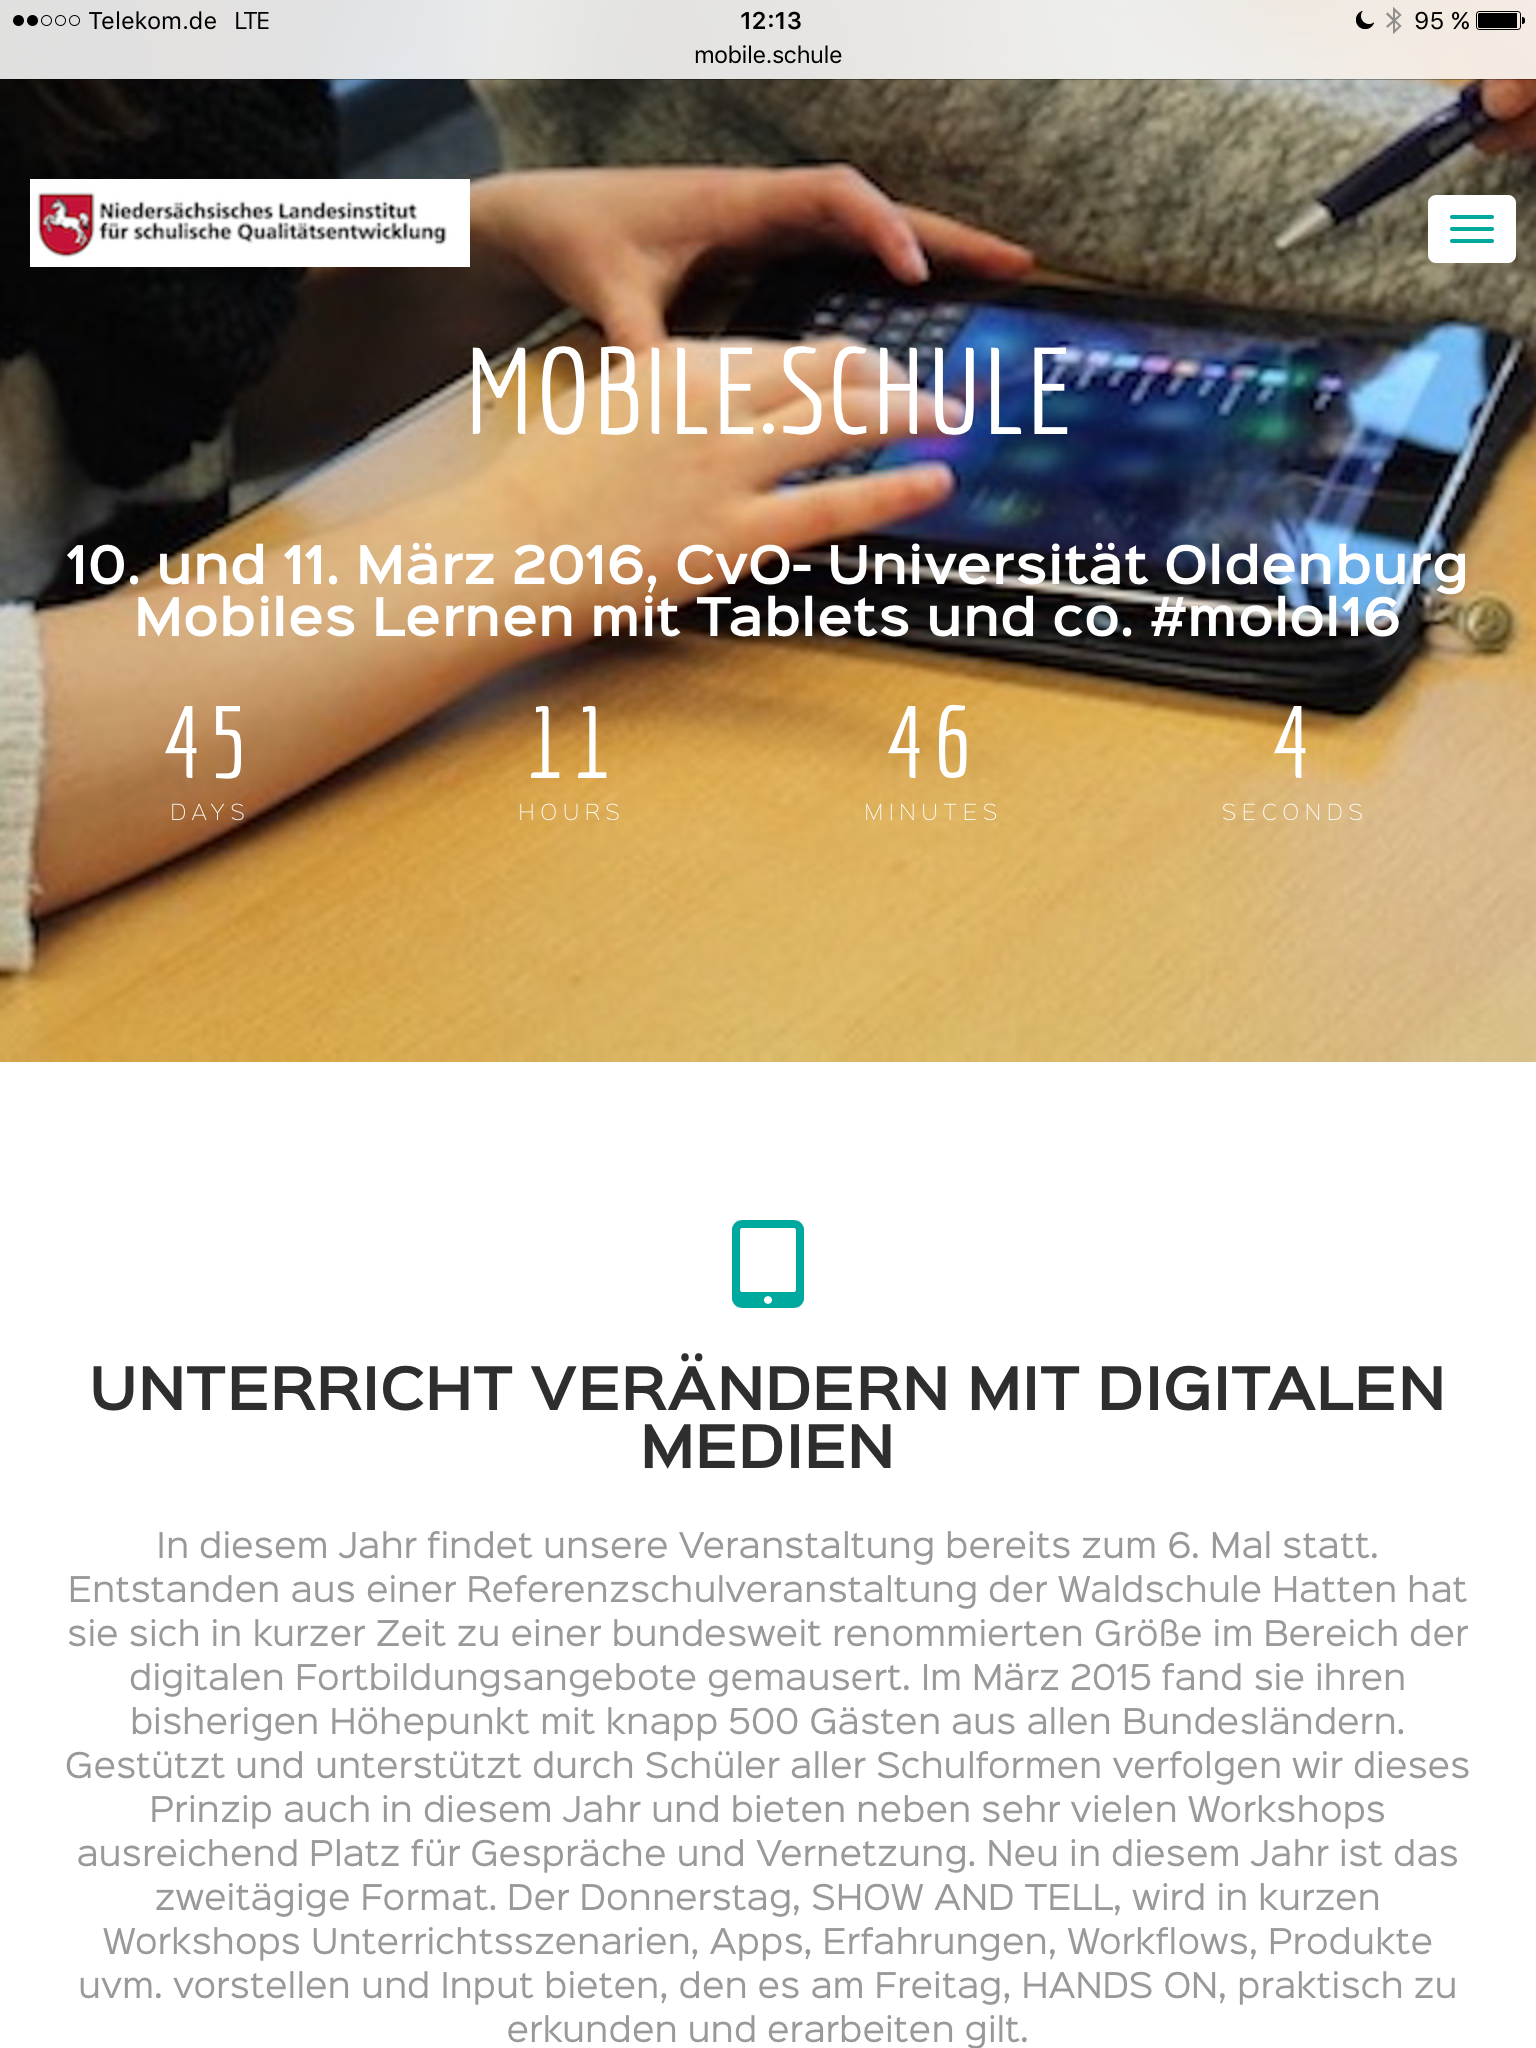 Mobile Schule 2016 in Oldenburg